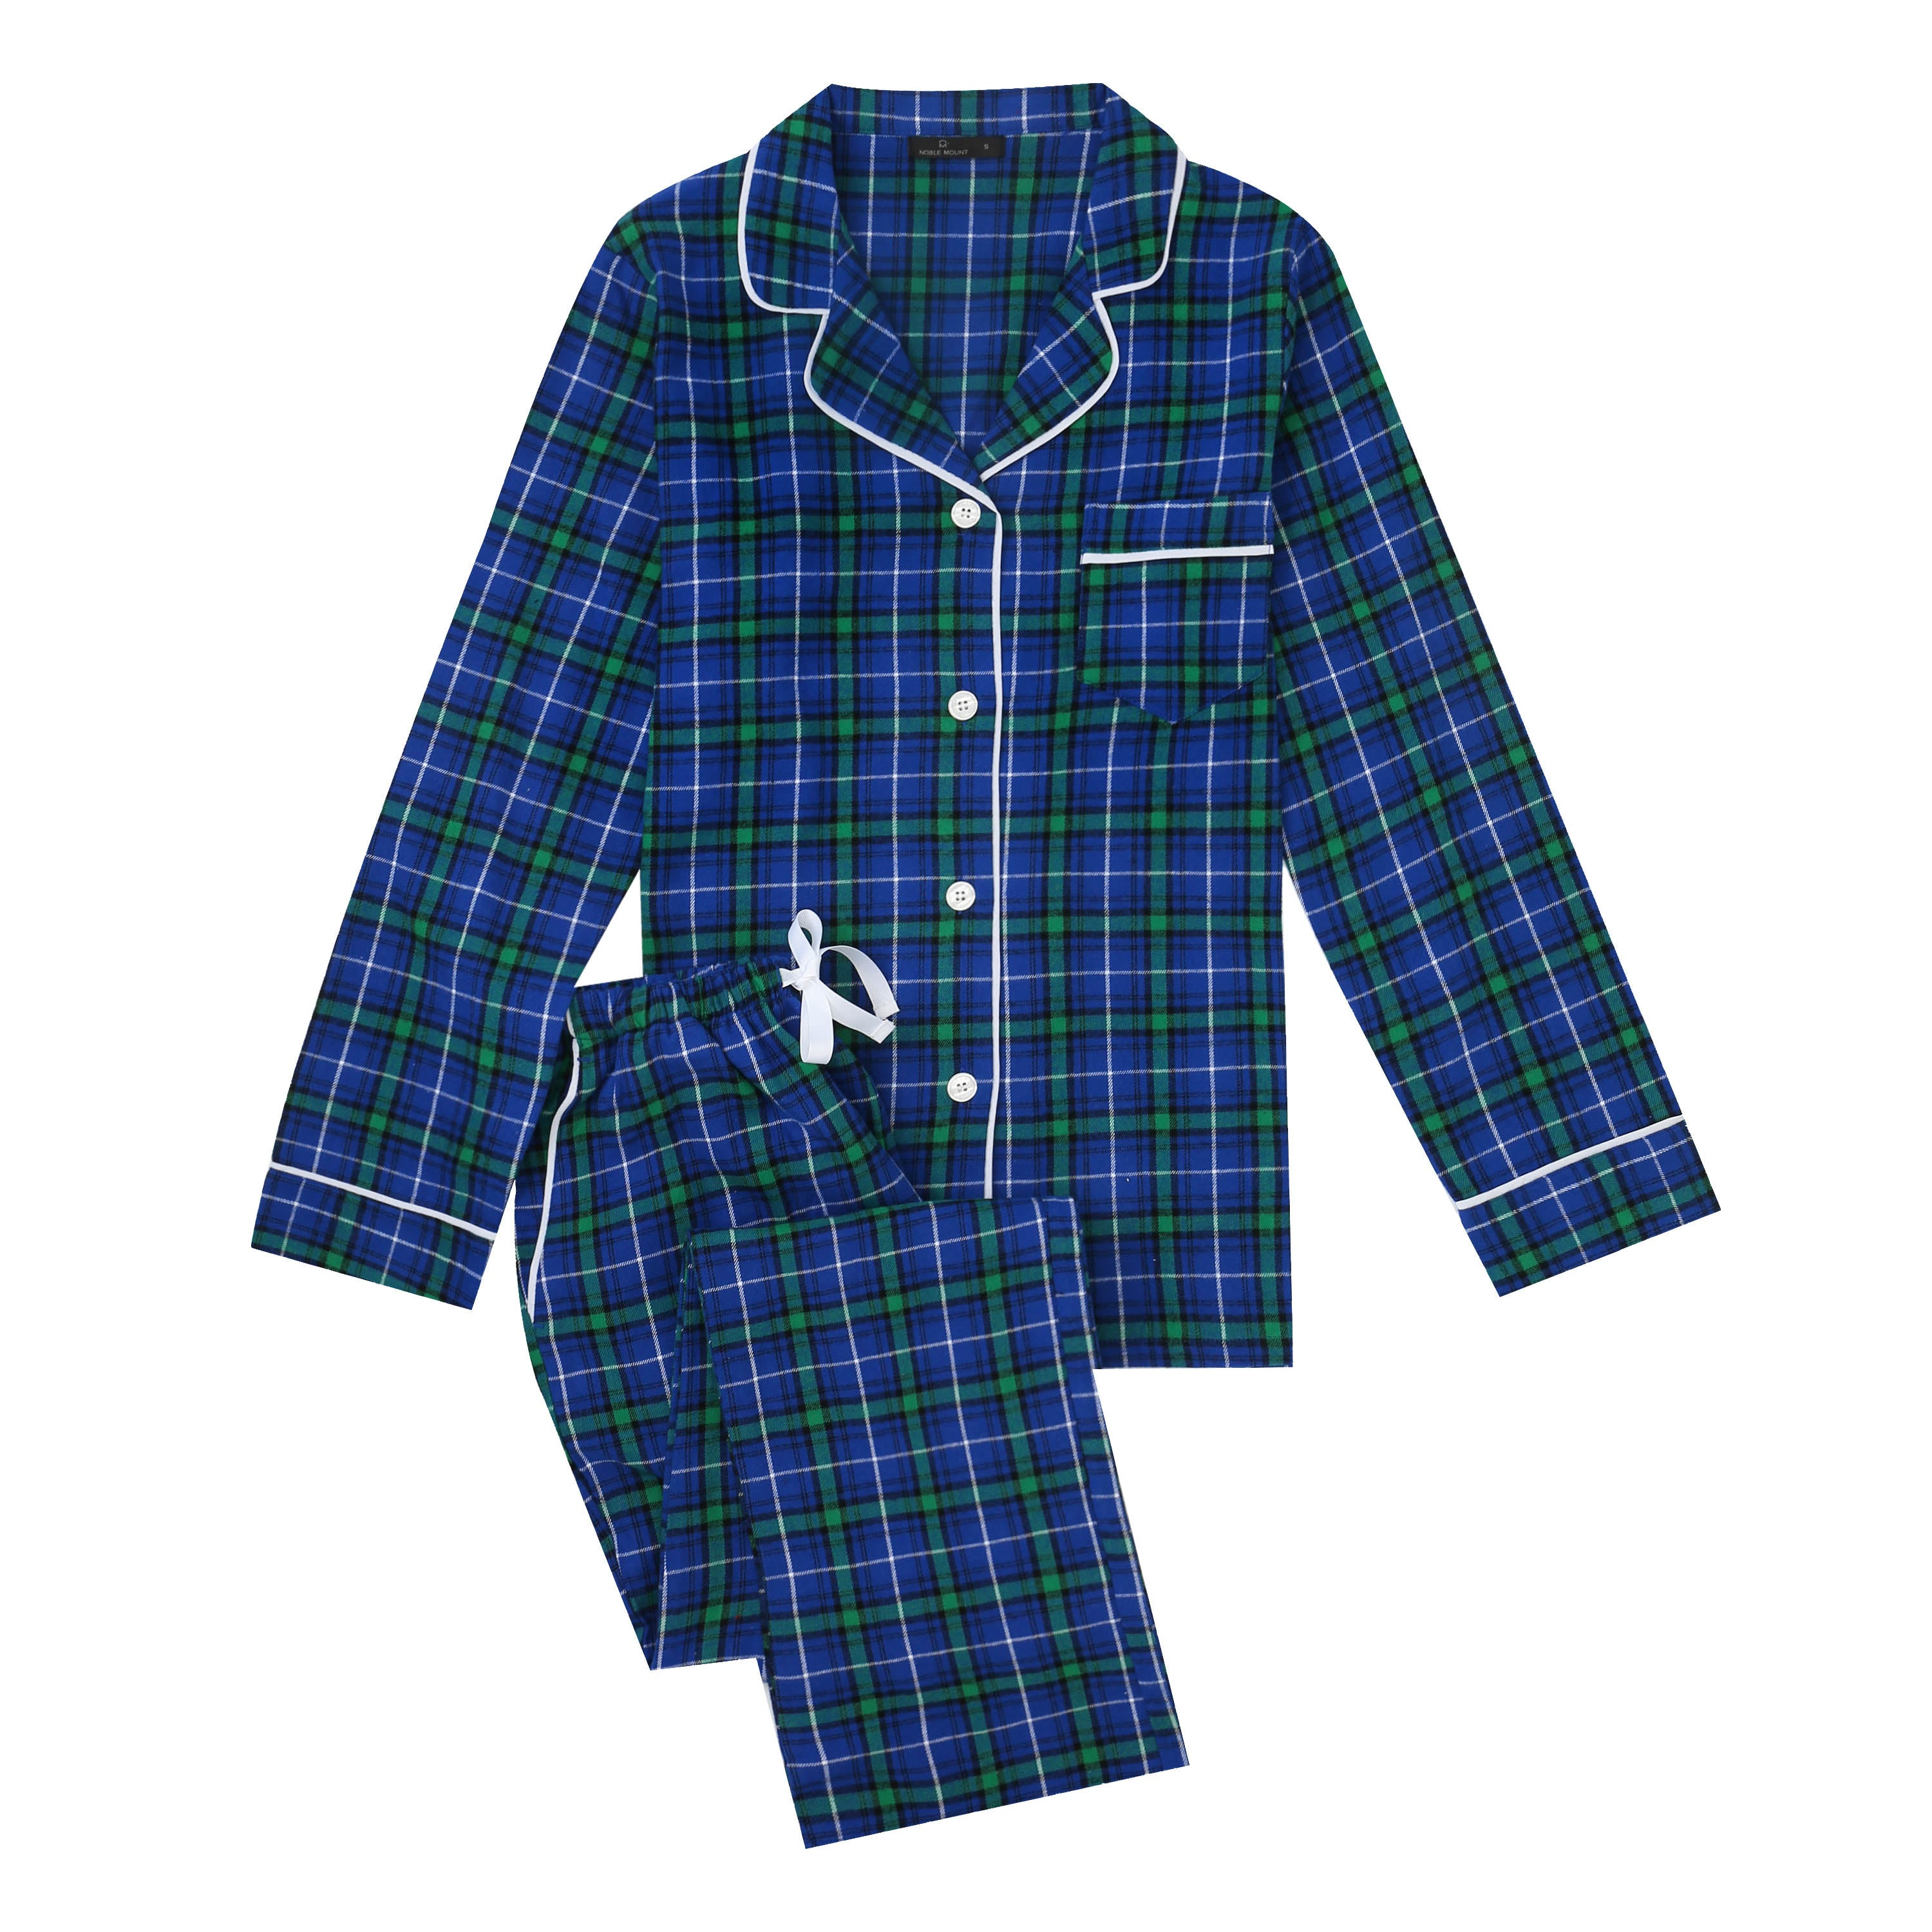 2Pc Lightweight Flannel Womens Pajama Sets - Blue-Green Scotch Plaid